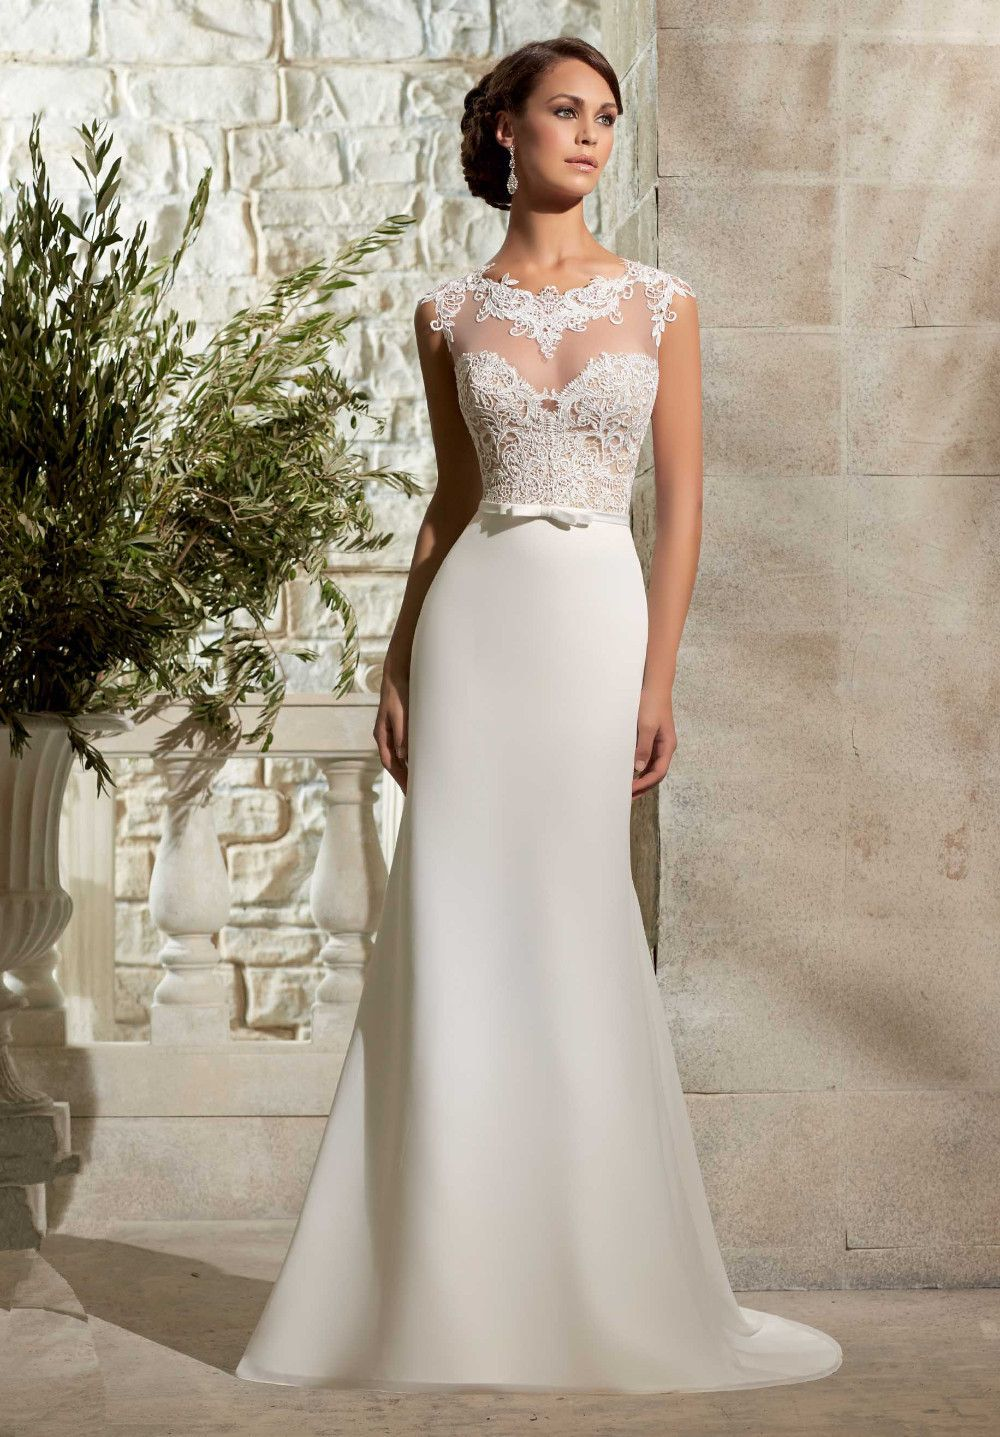 Simple white wedding dresses 2015 vestidos de novia new arrival simple white wedding dresses 2015 vestidos de novia new arrival mermaid sheath simple white purple junglespirit Image collections